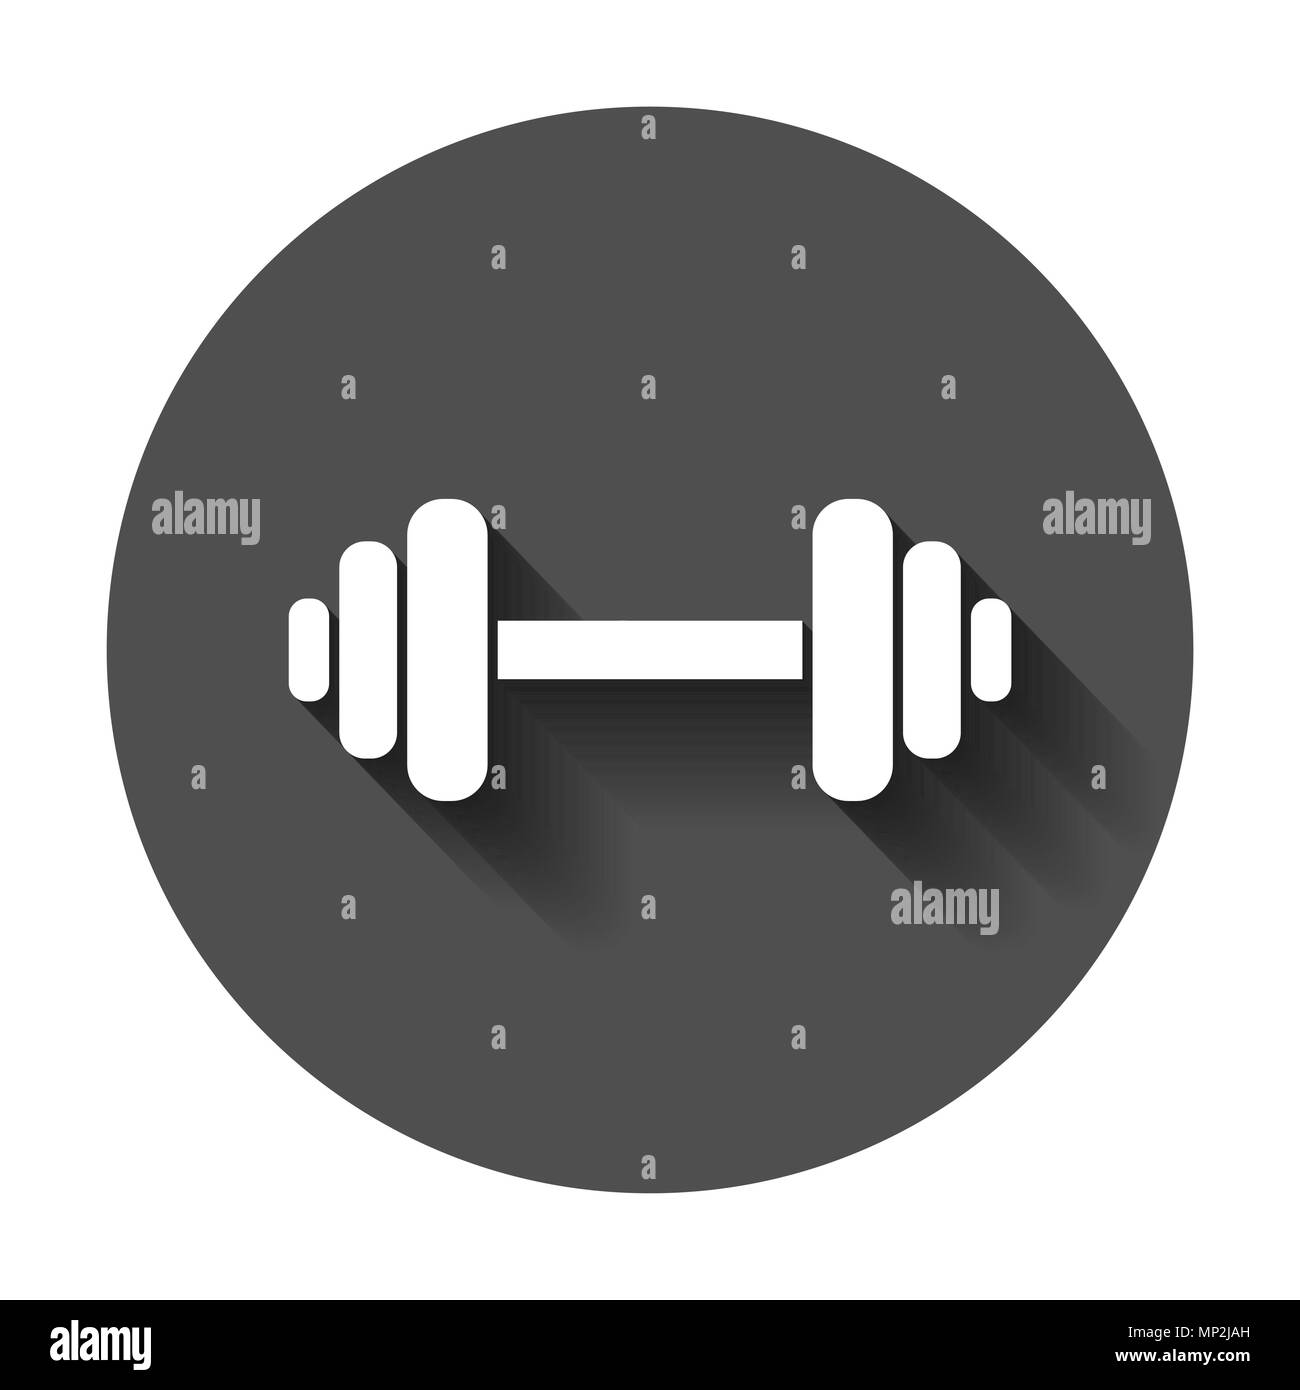 Cool Dumbbell Fitness Gym In Flat Style Barbell Illustration Gmtry Best Dining Table And Chair Ideas Images Gmtryco